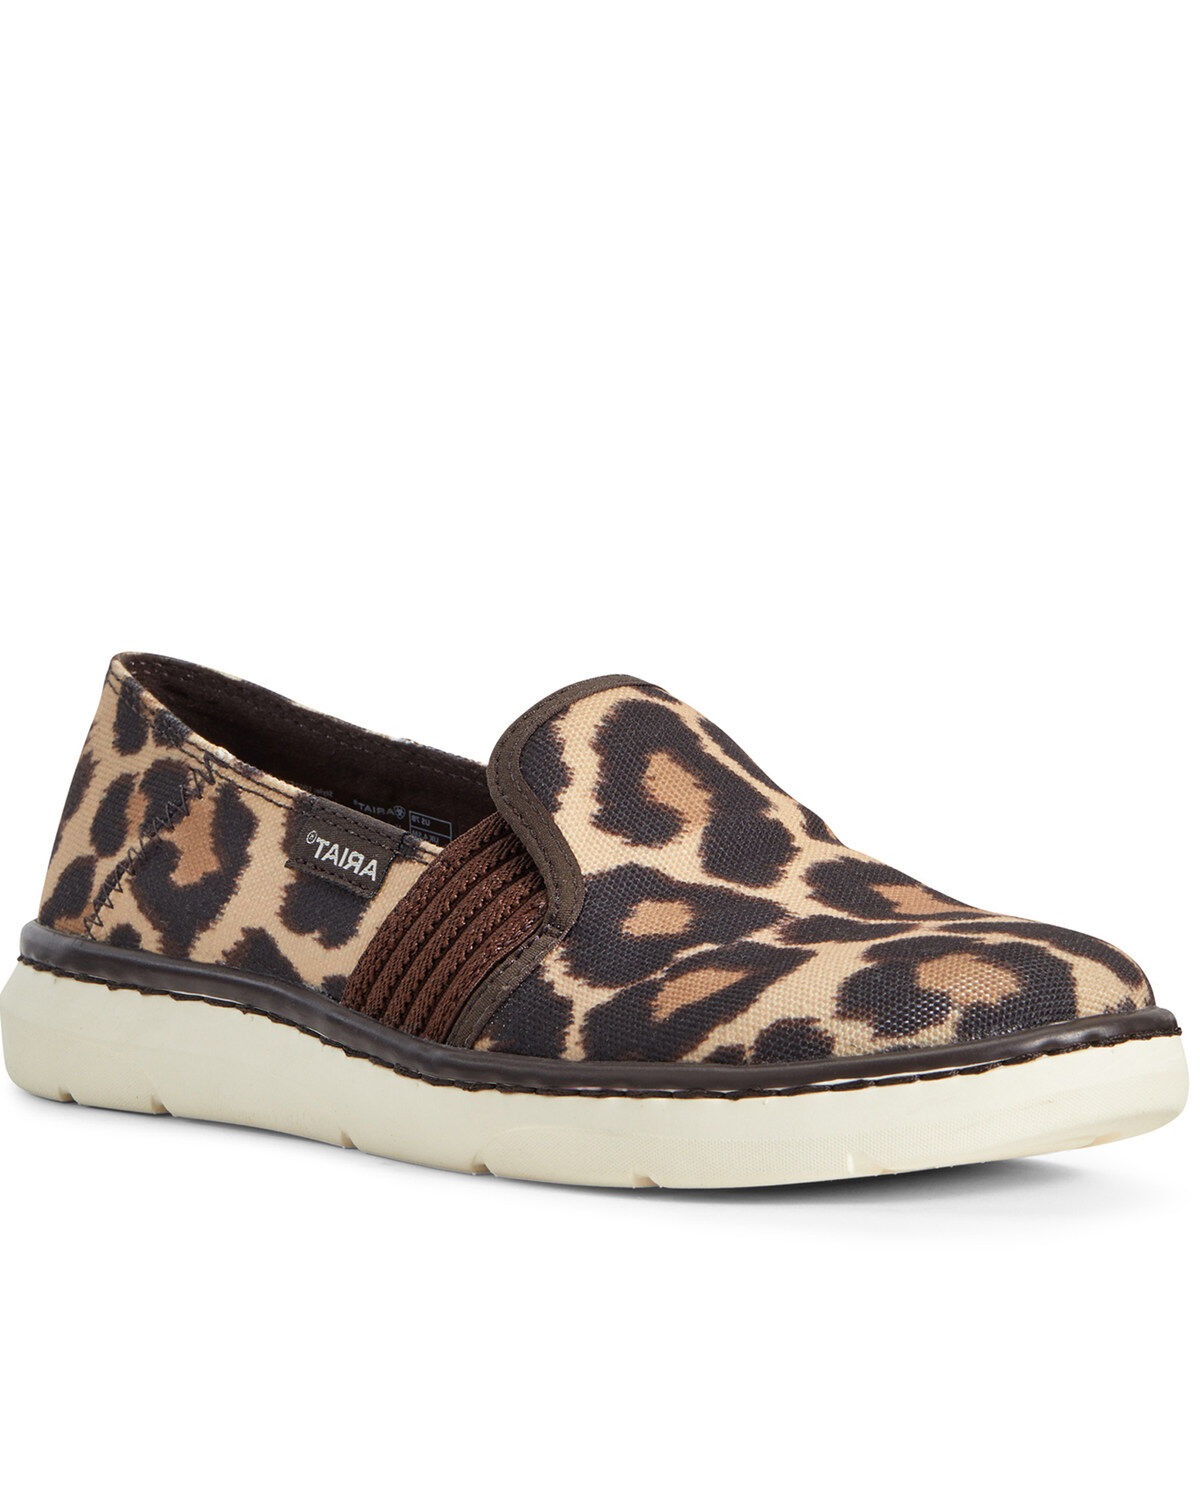 Leopard Shoes - Round Toe | Boot Barn